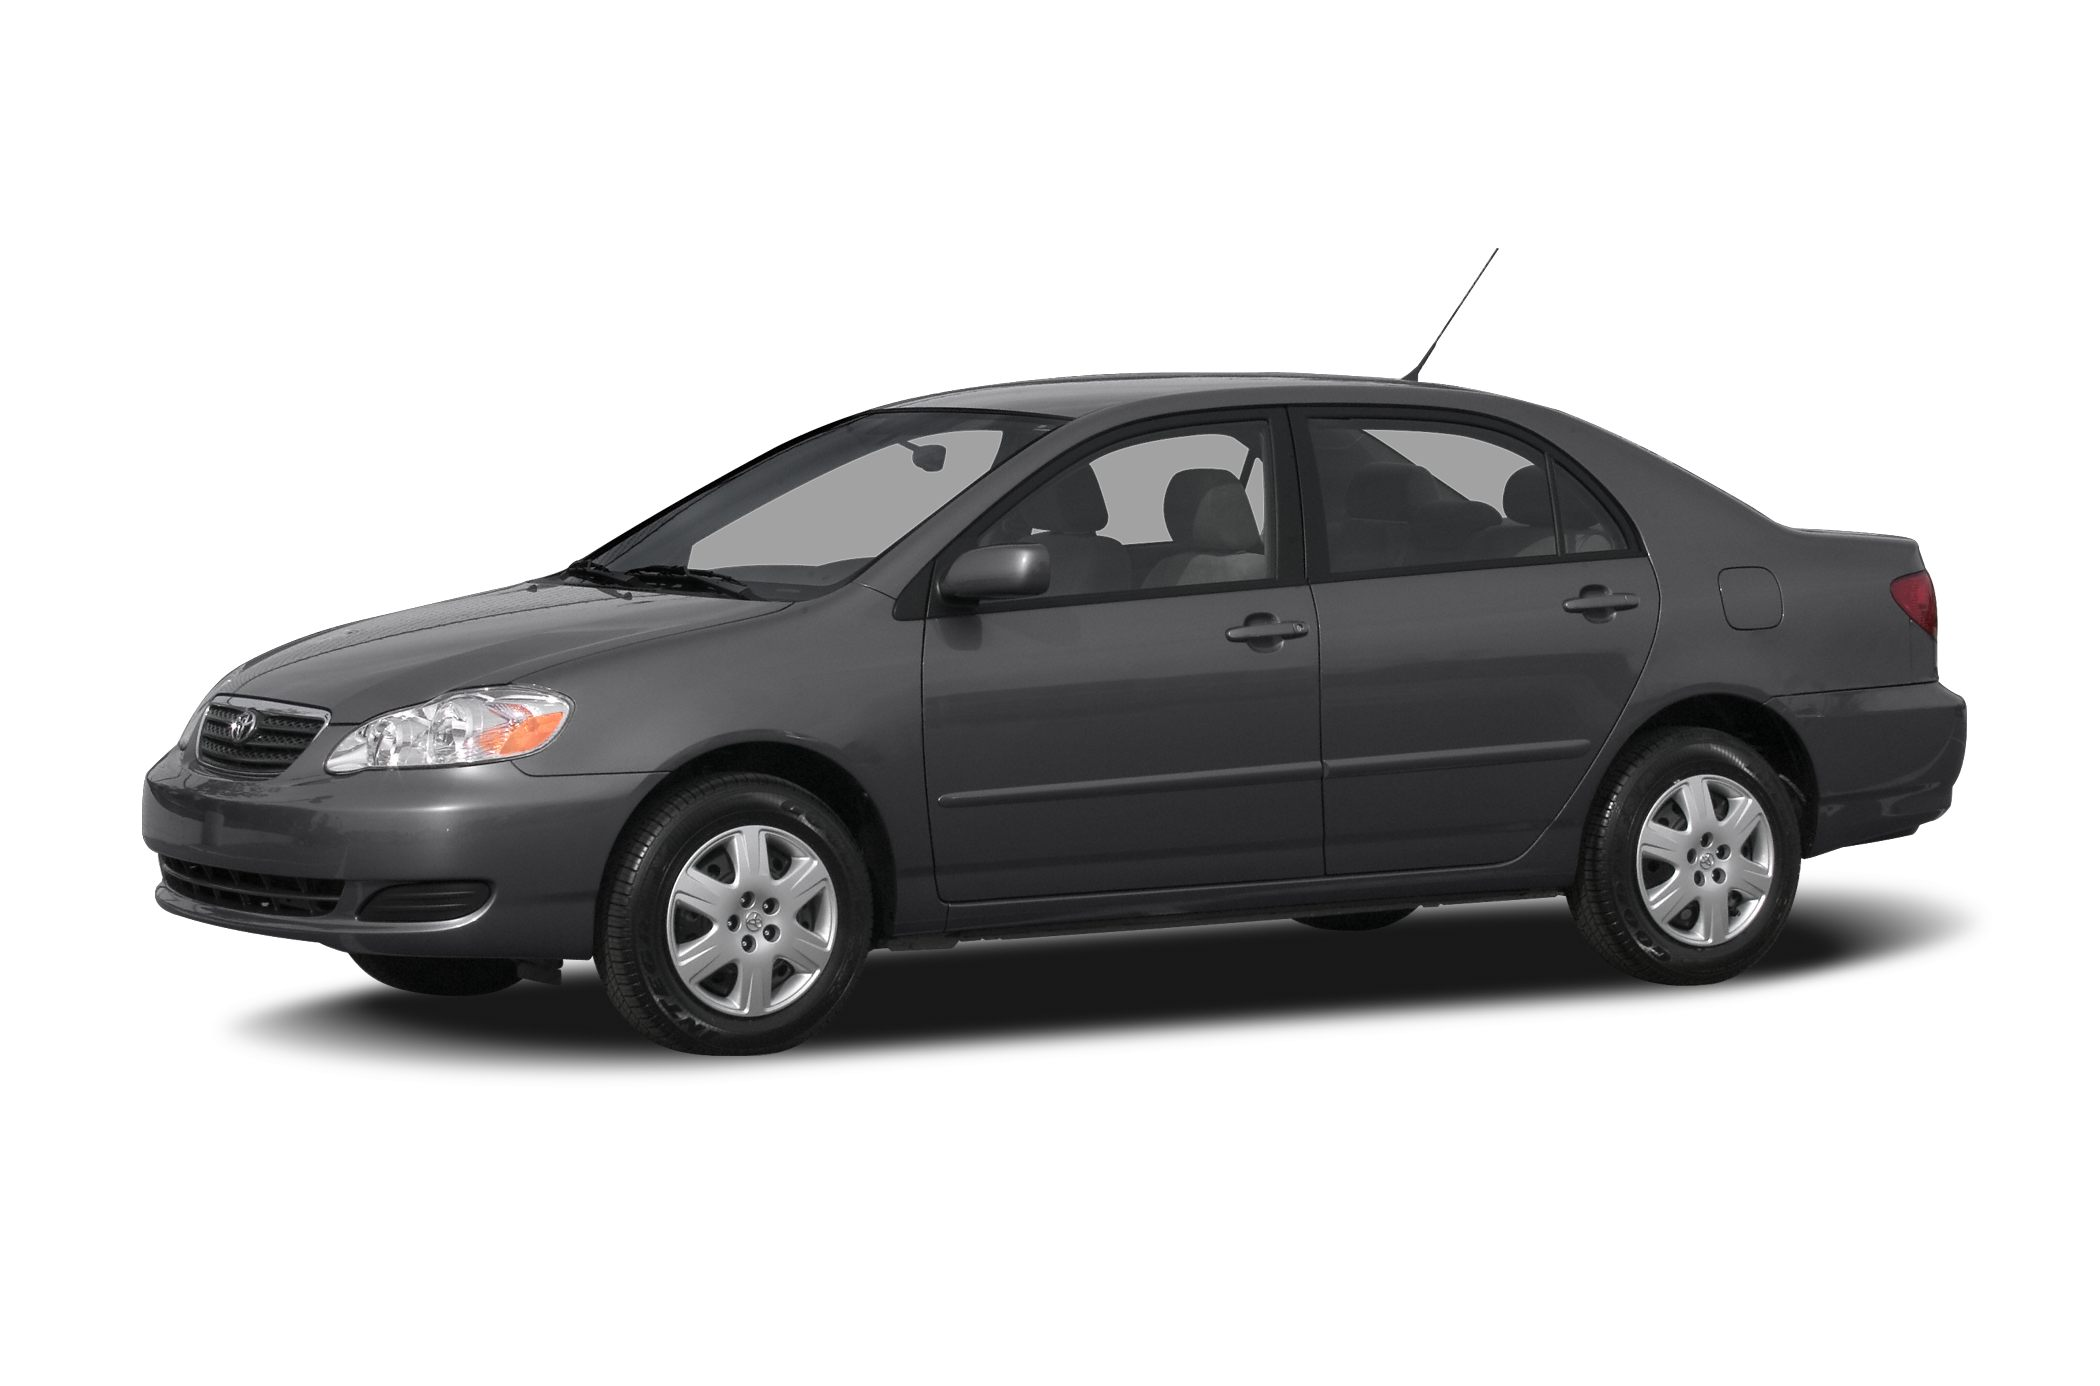 2008 Toyota Corolla S CARFAX 1-Owner GREAT MILES 19792 S trim EPA 35 MPG Hwy26 MPG City Sunr